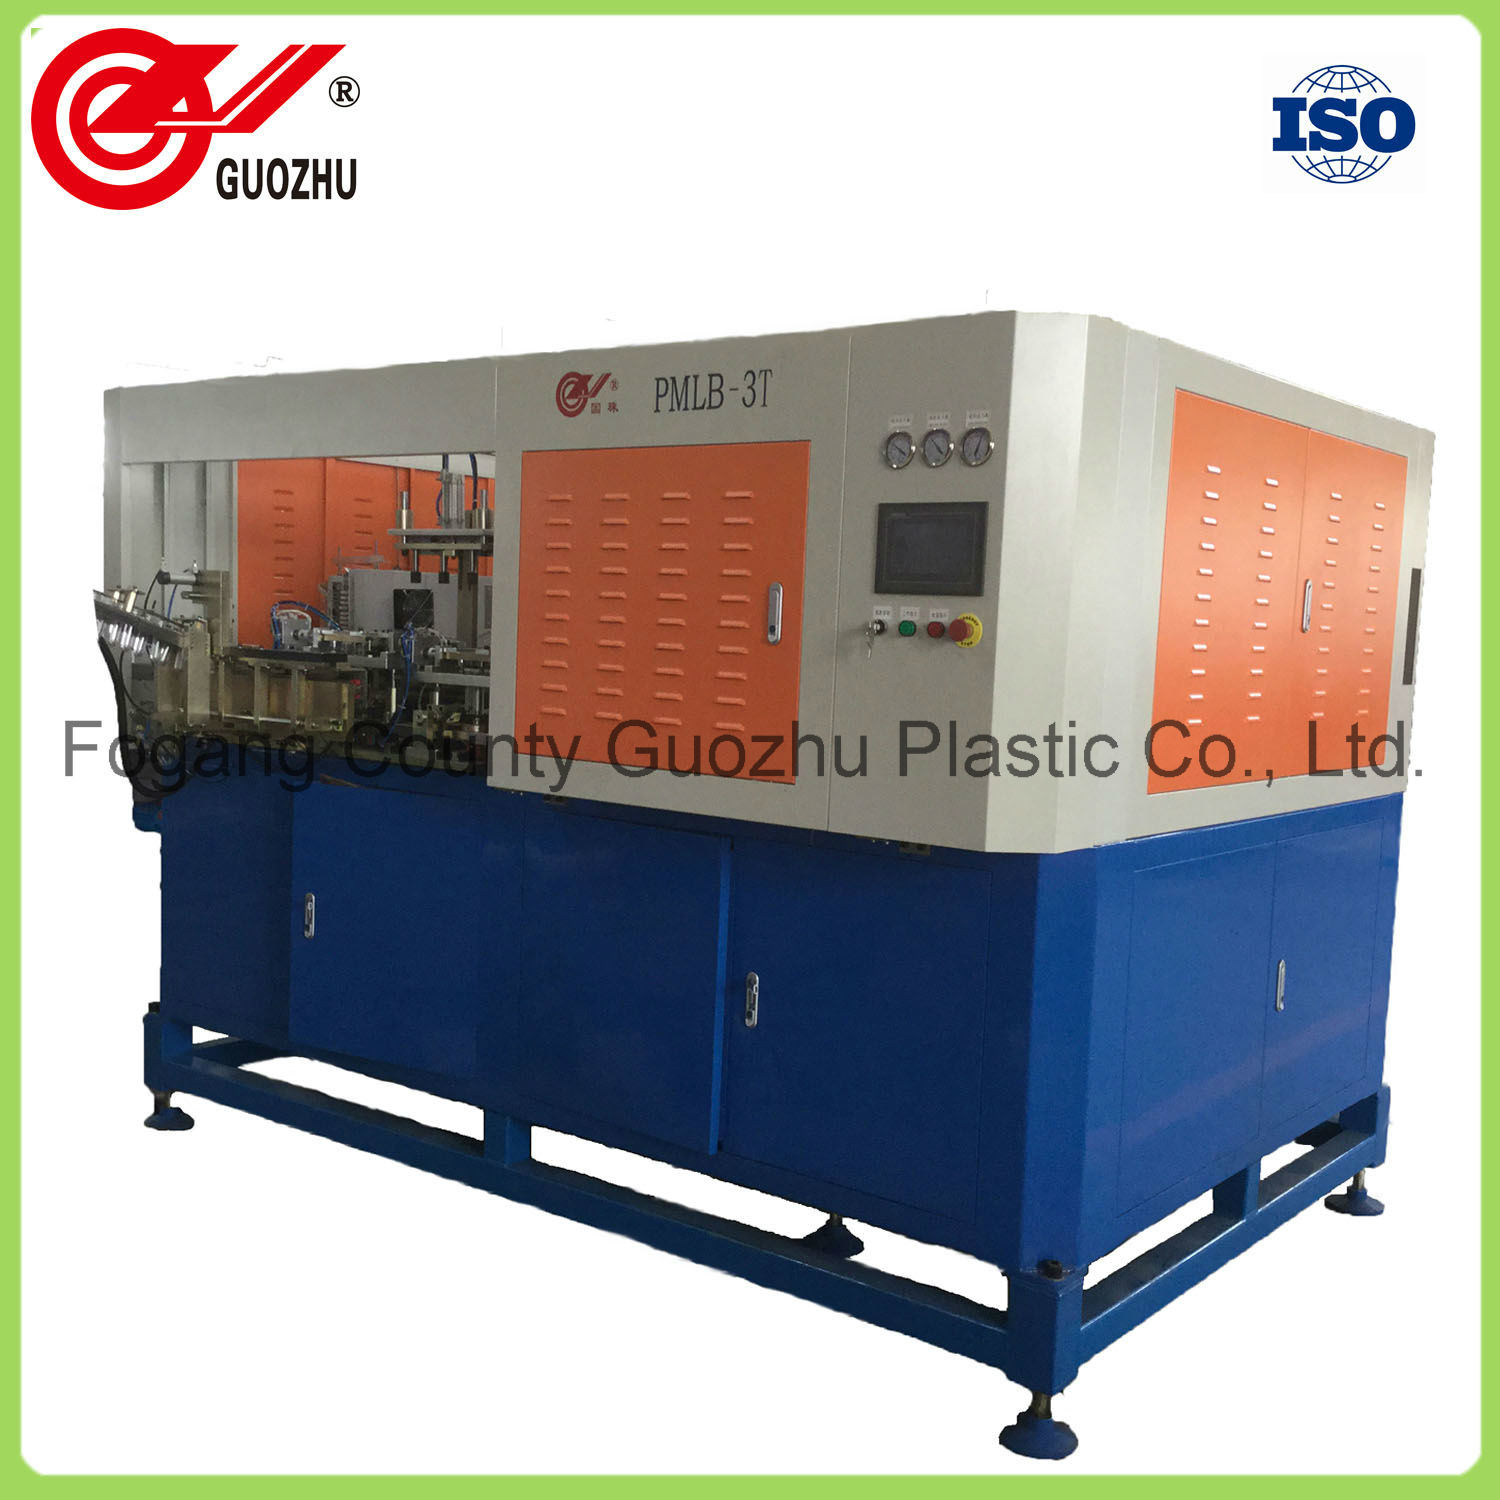 Production Line Continuous Heating Linear Bottle Blowing Machine